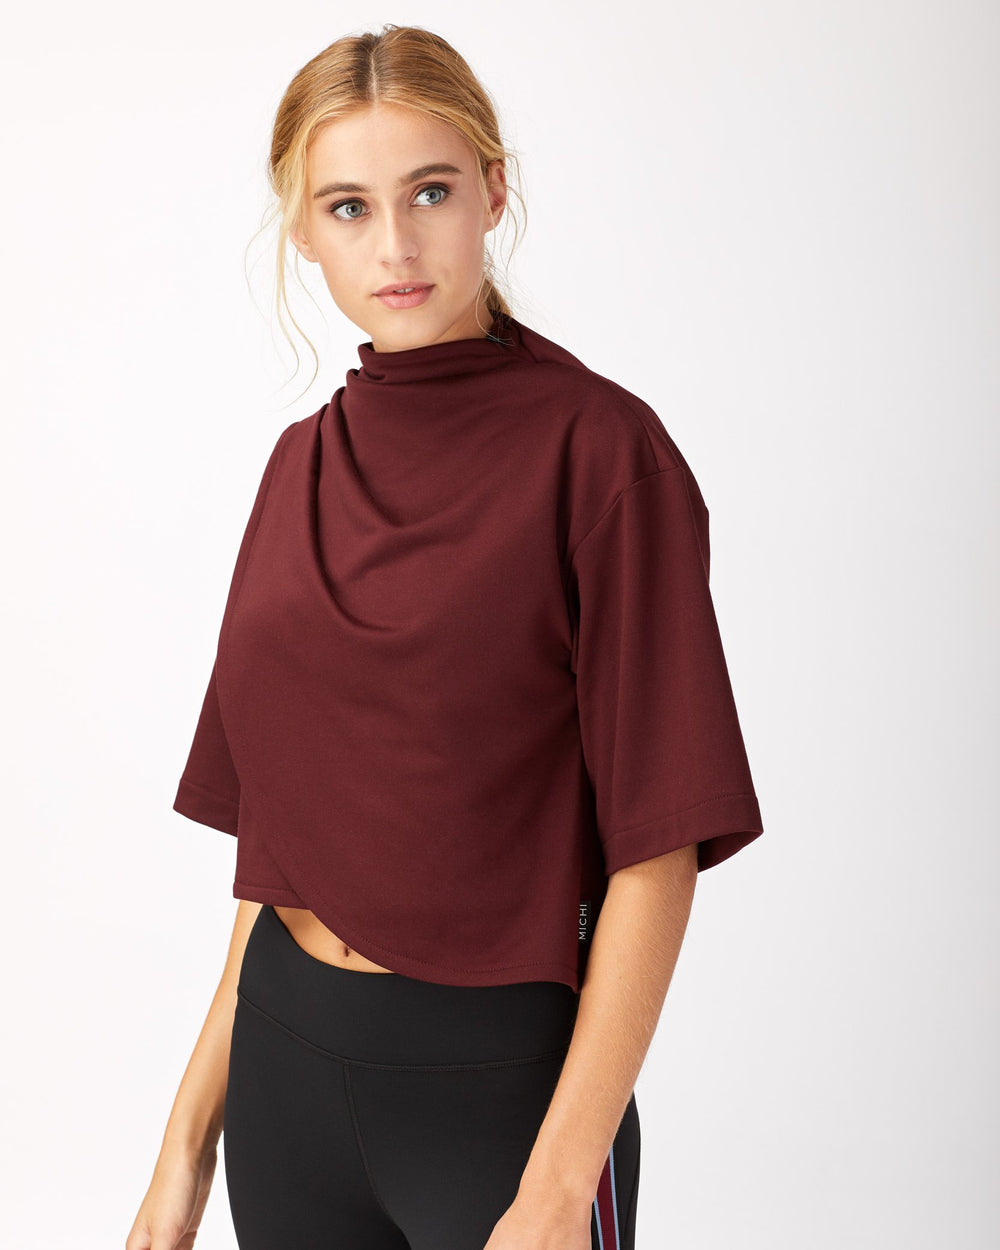 Voyageur Crop Top - Wine